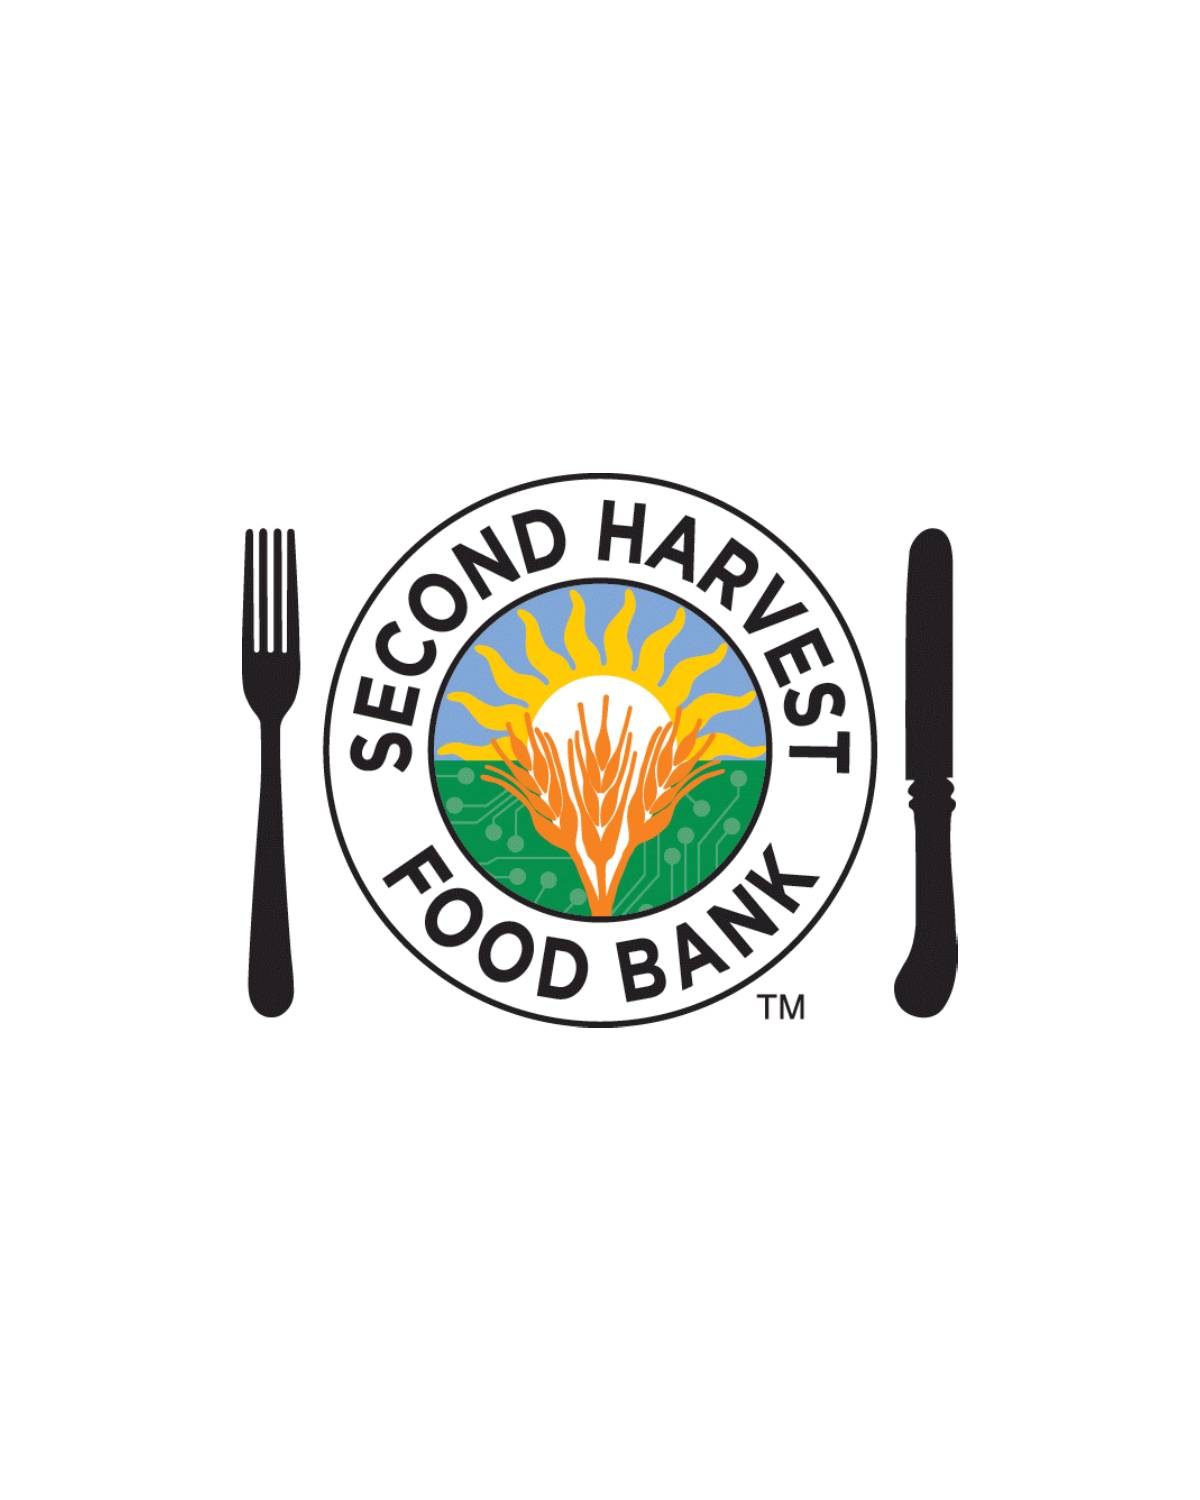 Donate To Second Harvest image